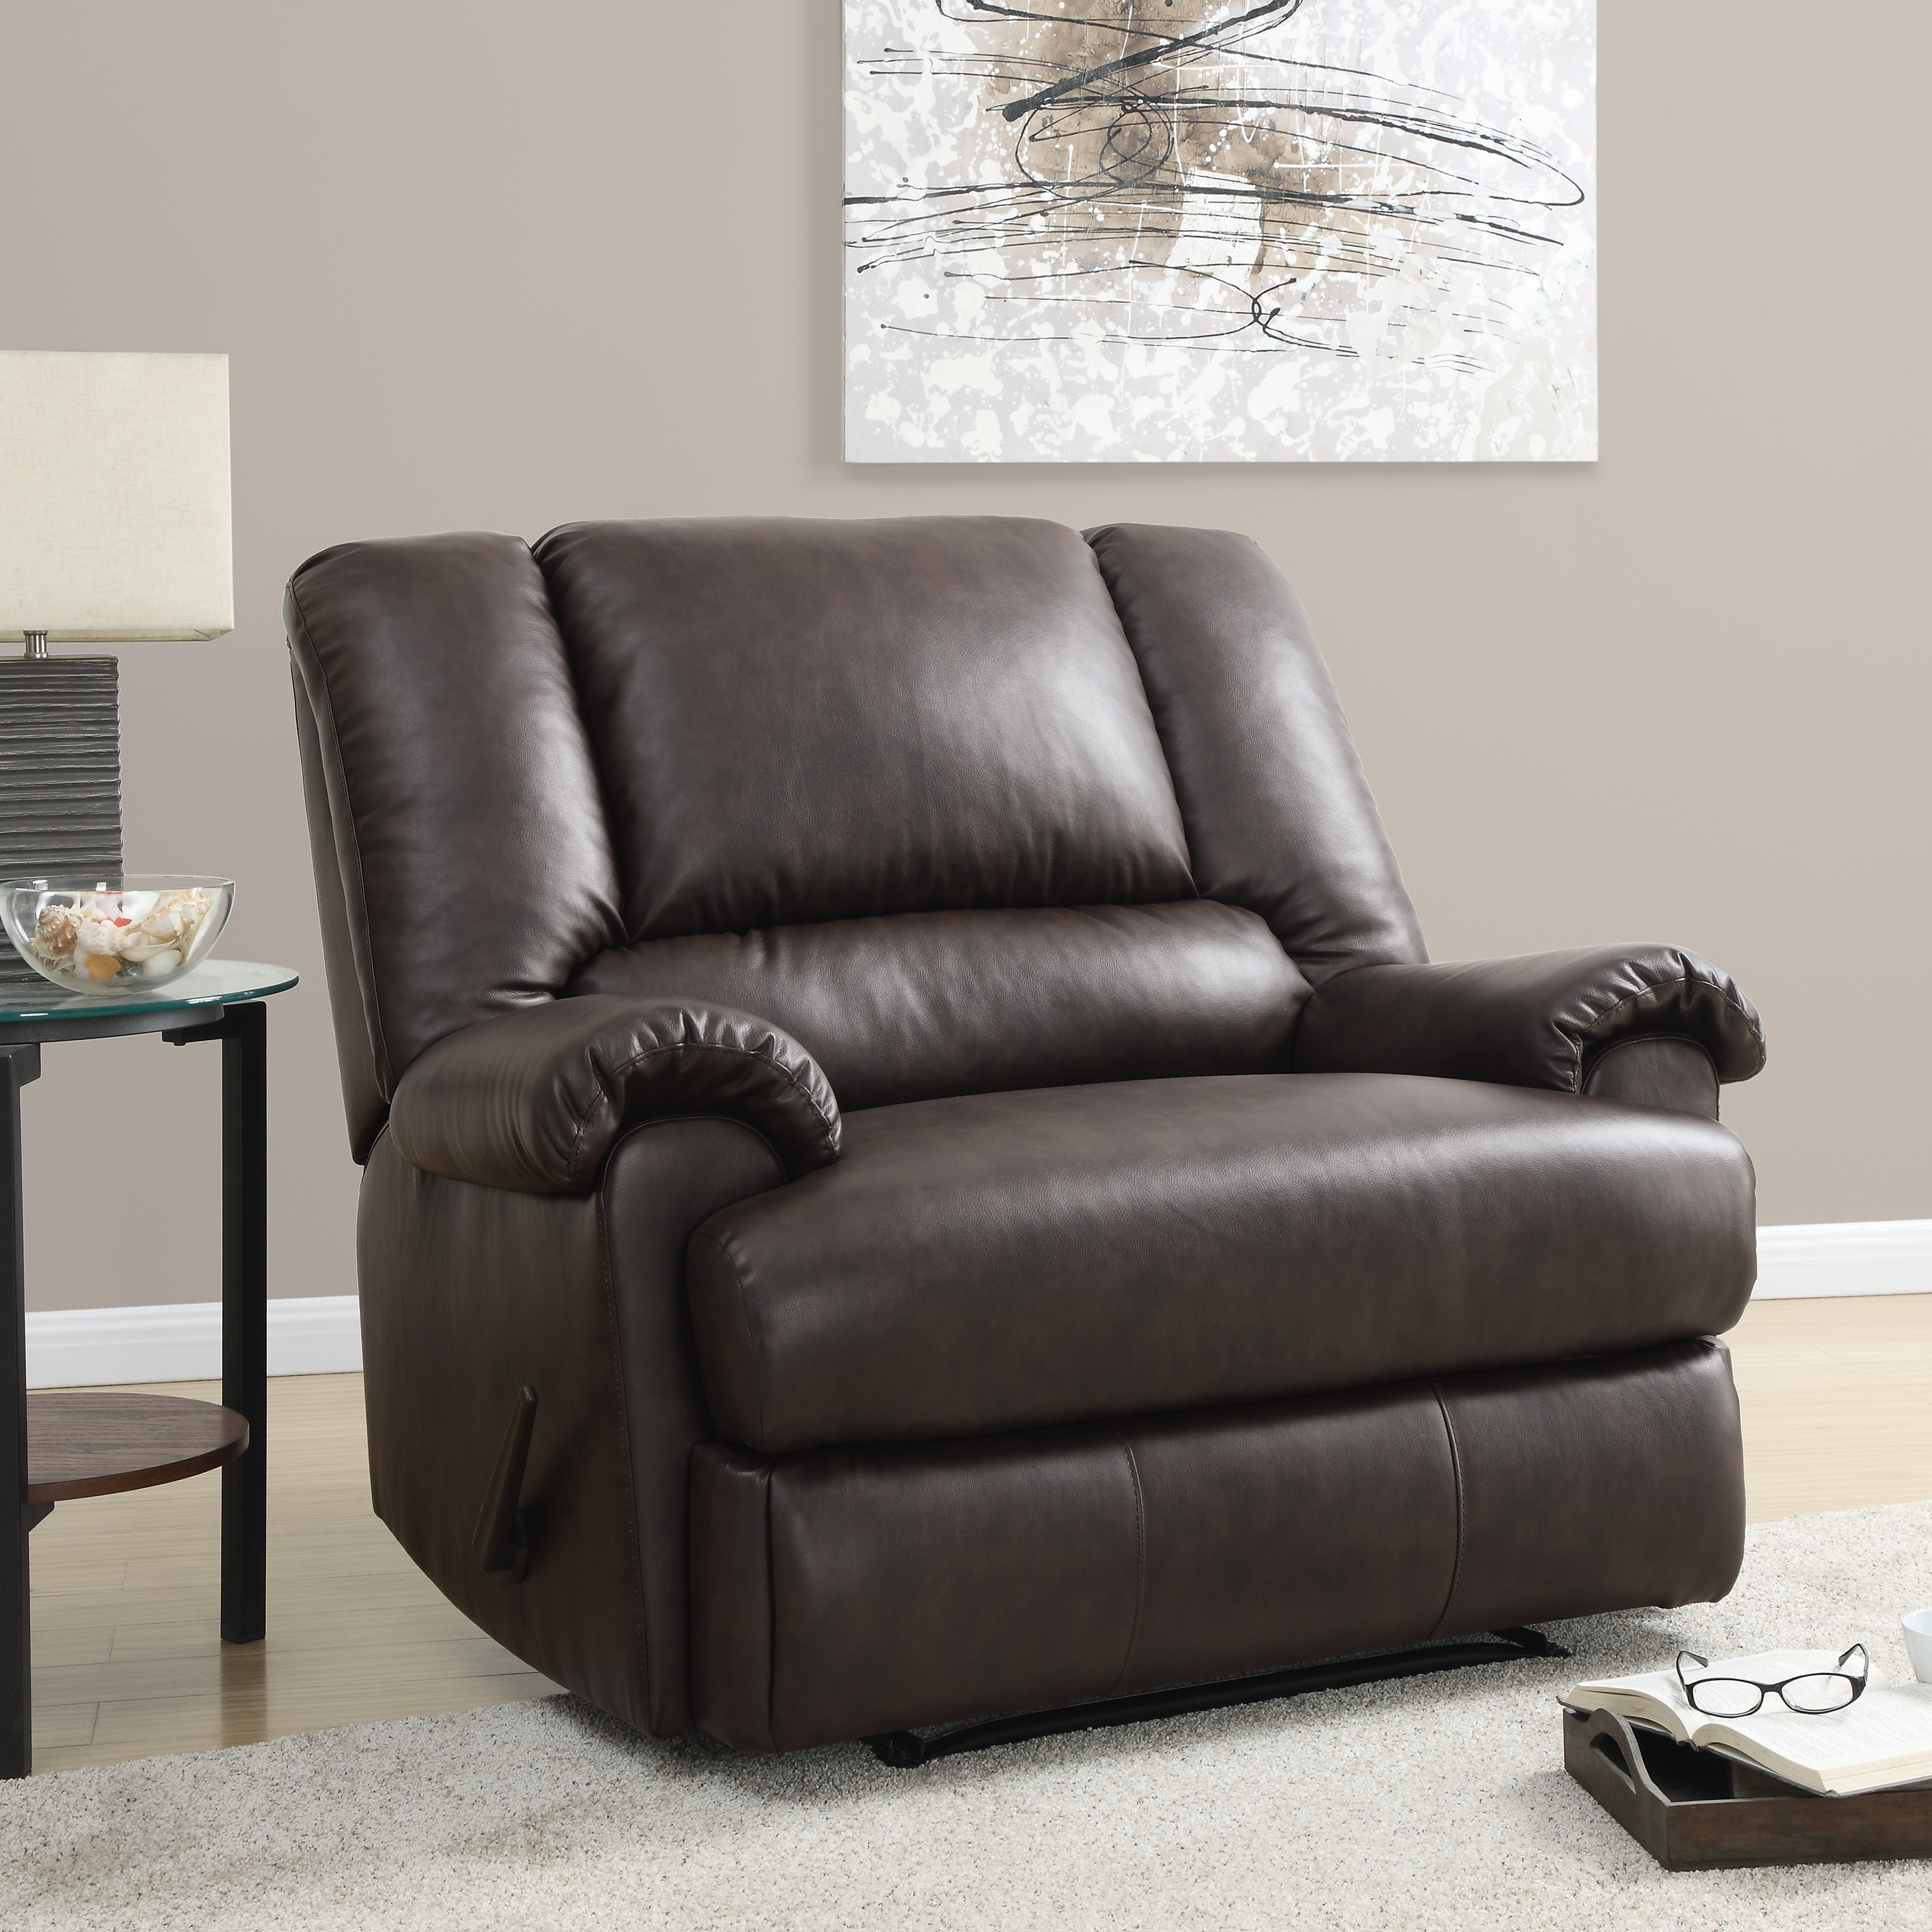 Leather Chair And A Half Dorel Home Furnishings Stanford Espresso Faux Leather